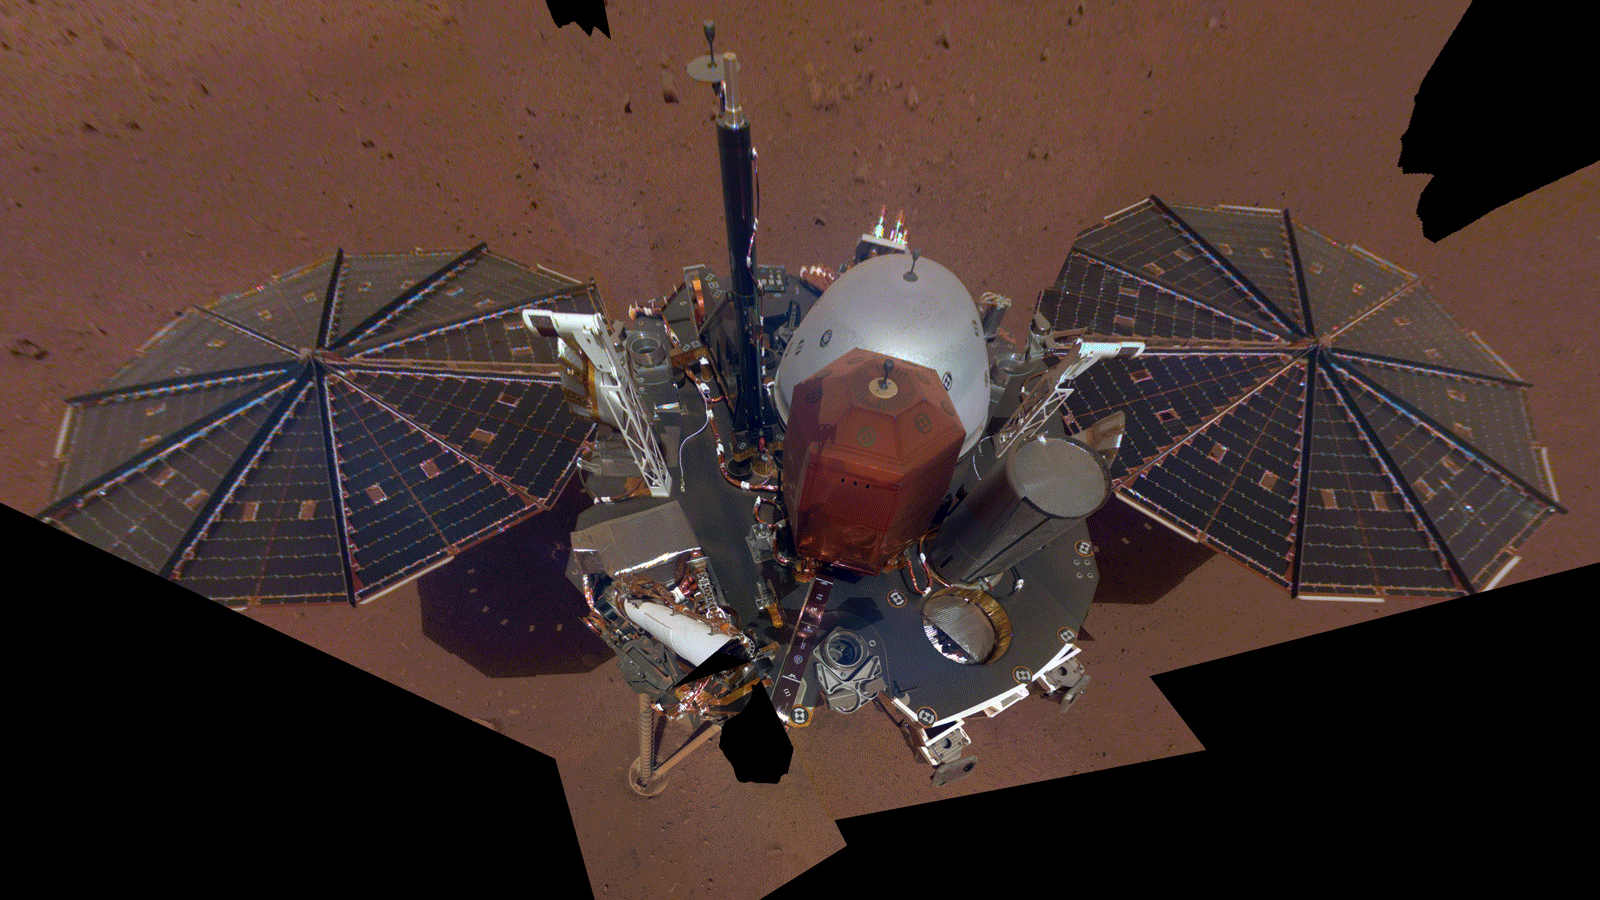 This is NASA InSight's first selfie on Mars. It displays the lander's solar panels and deck. On top of the deck are its science instruments, weather sensor booms and UHF antenna.